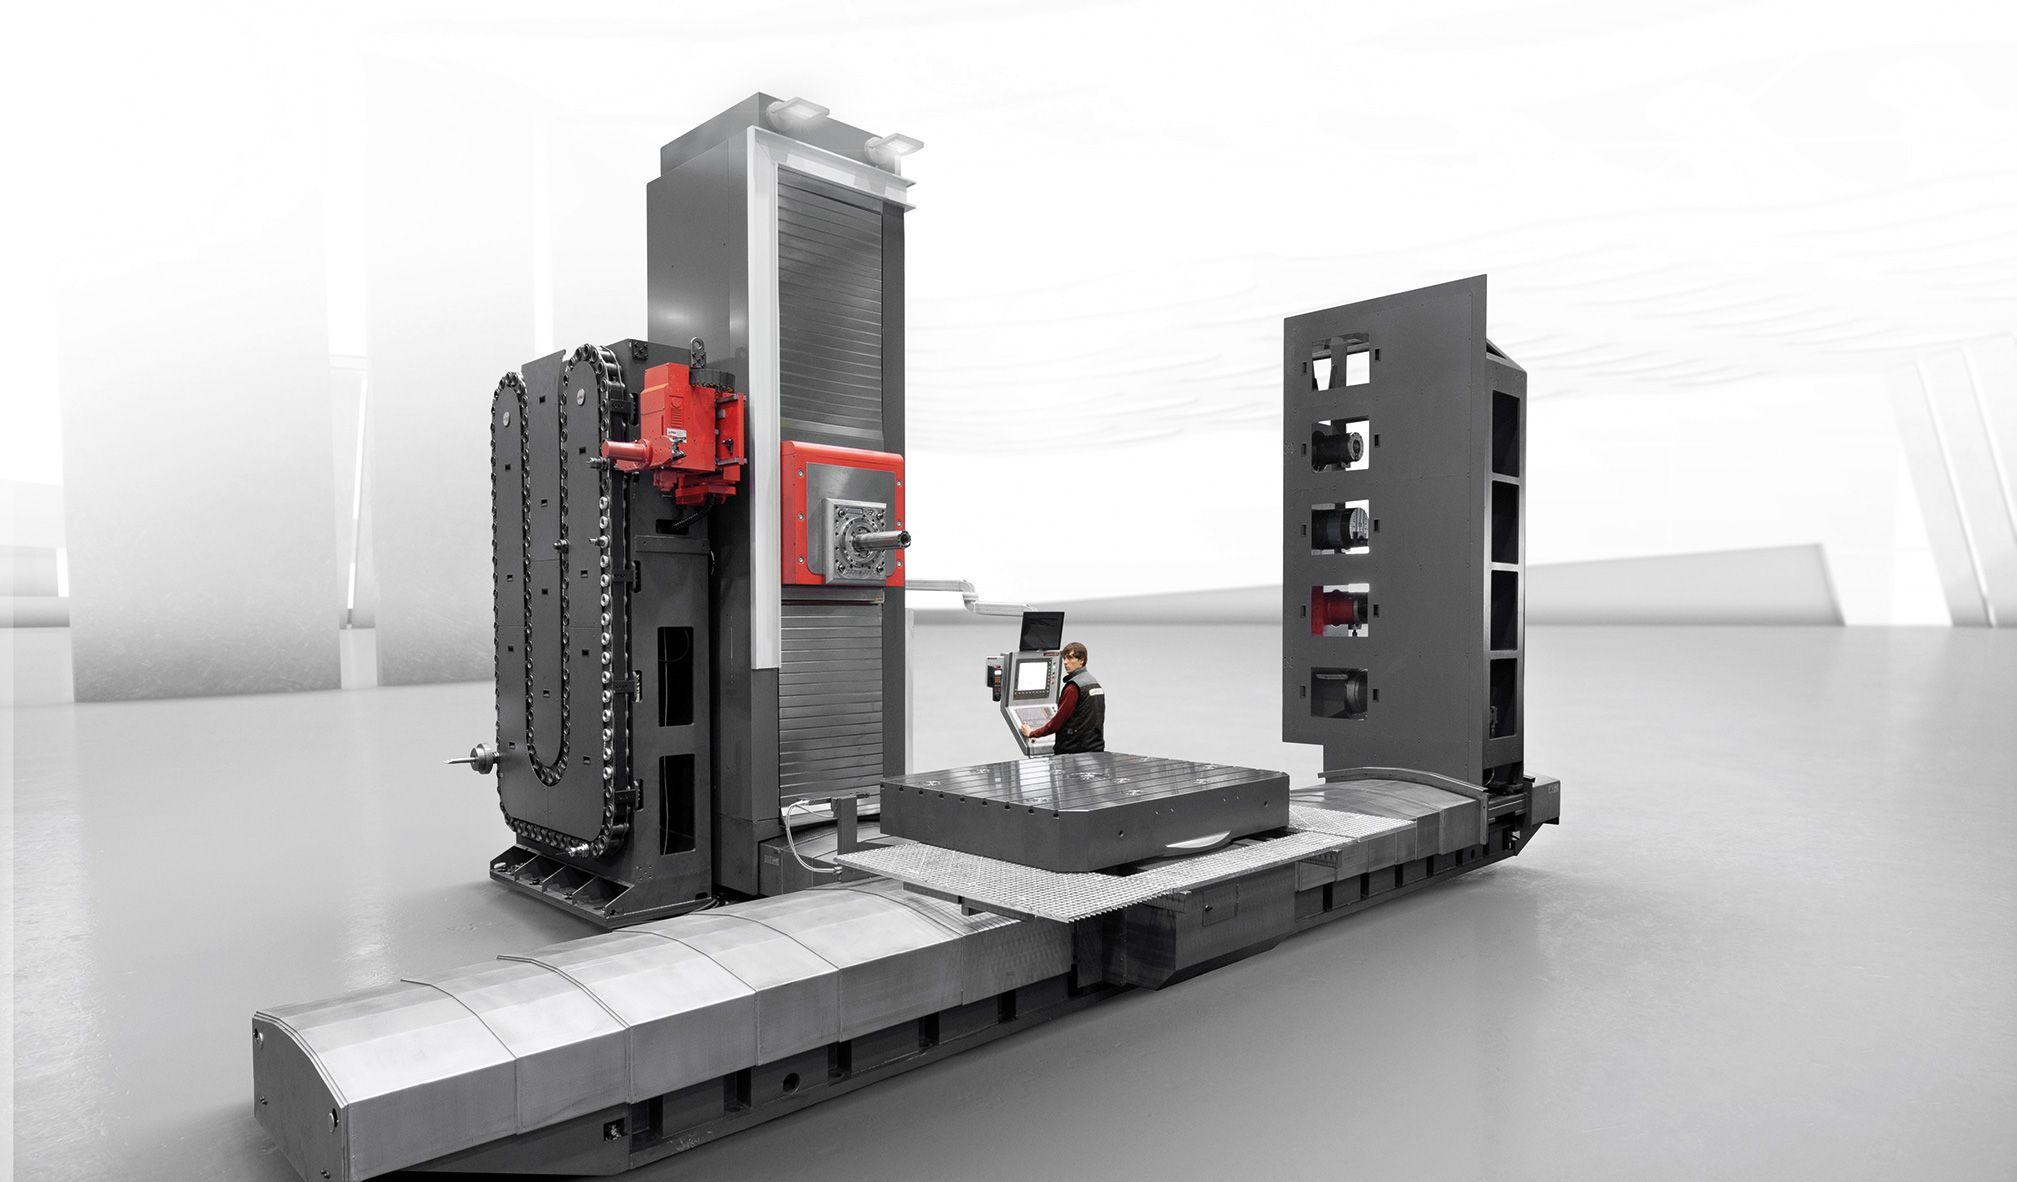 Hidromek: a mega-project in Turkey with 11 machining centers for public works machinery